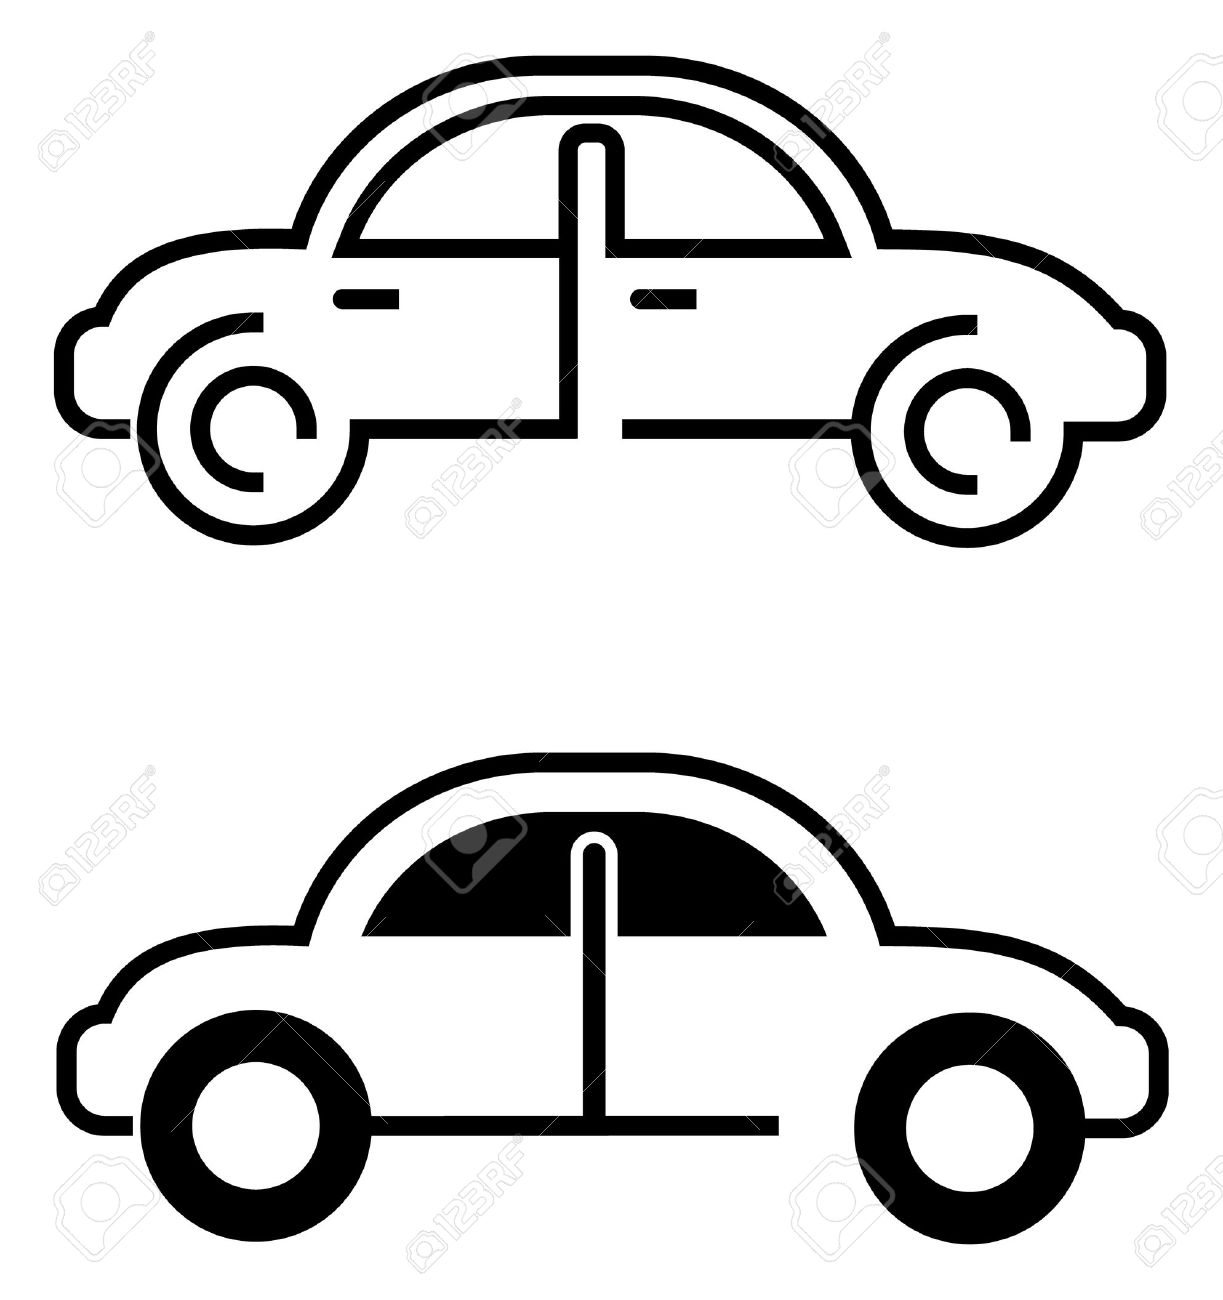 car vector icon on white isolated outline design elements rh 123rf com car vector logo car vector plan